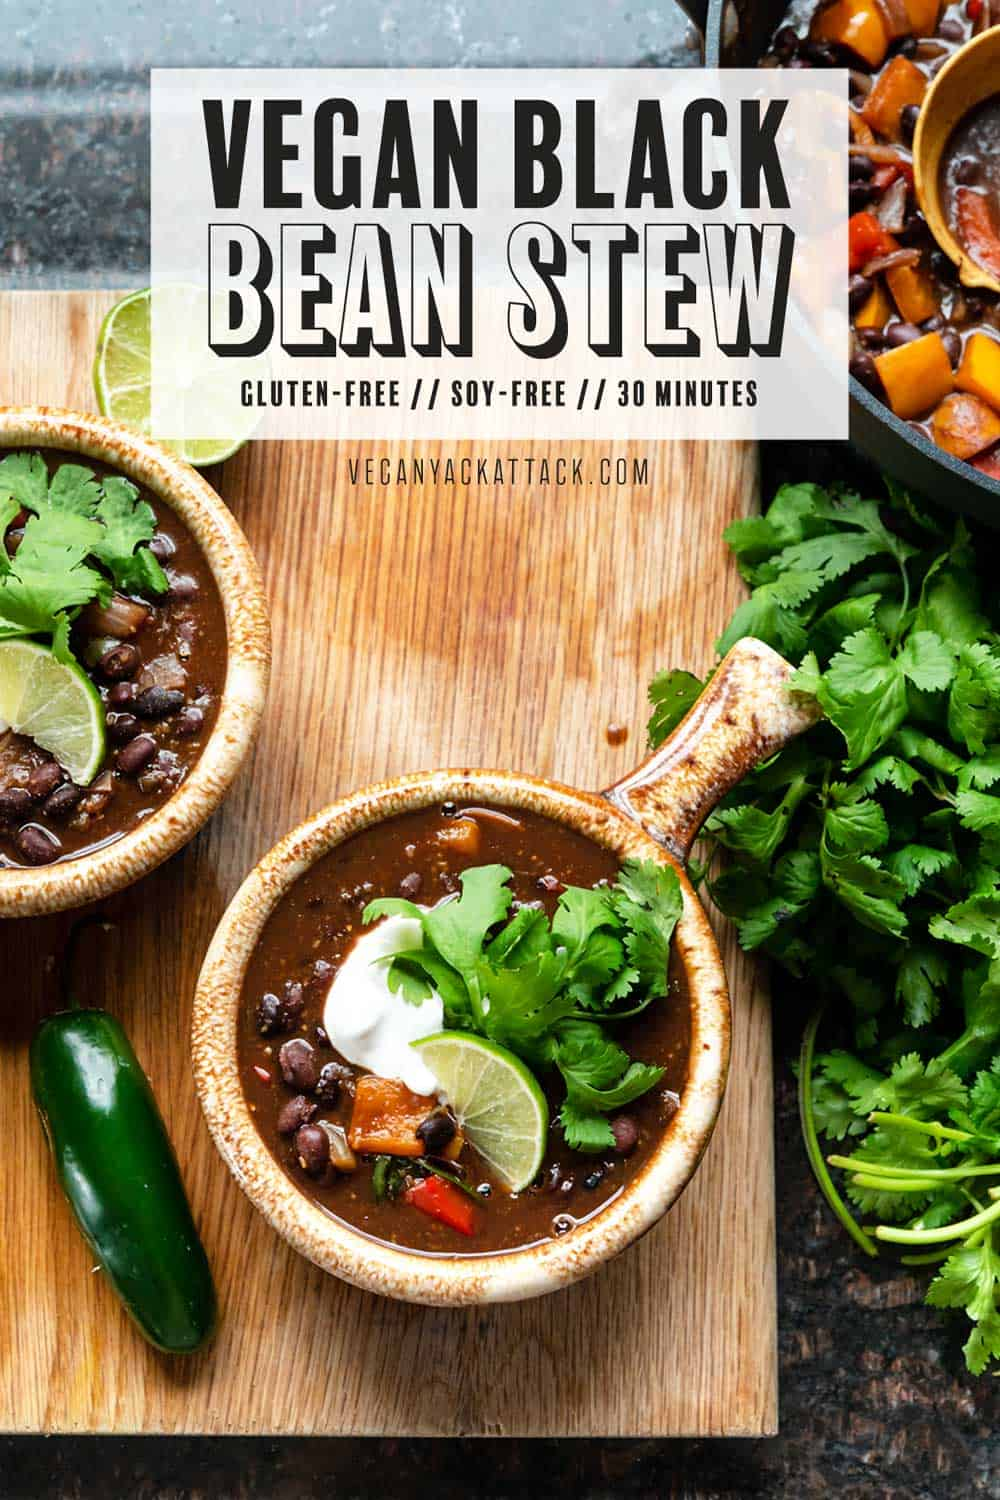 Image of two bowls of black bean stew on a cutting board with fresh cilantro bundle